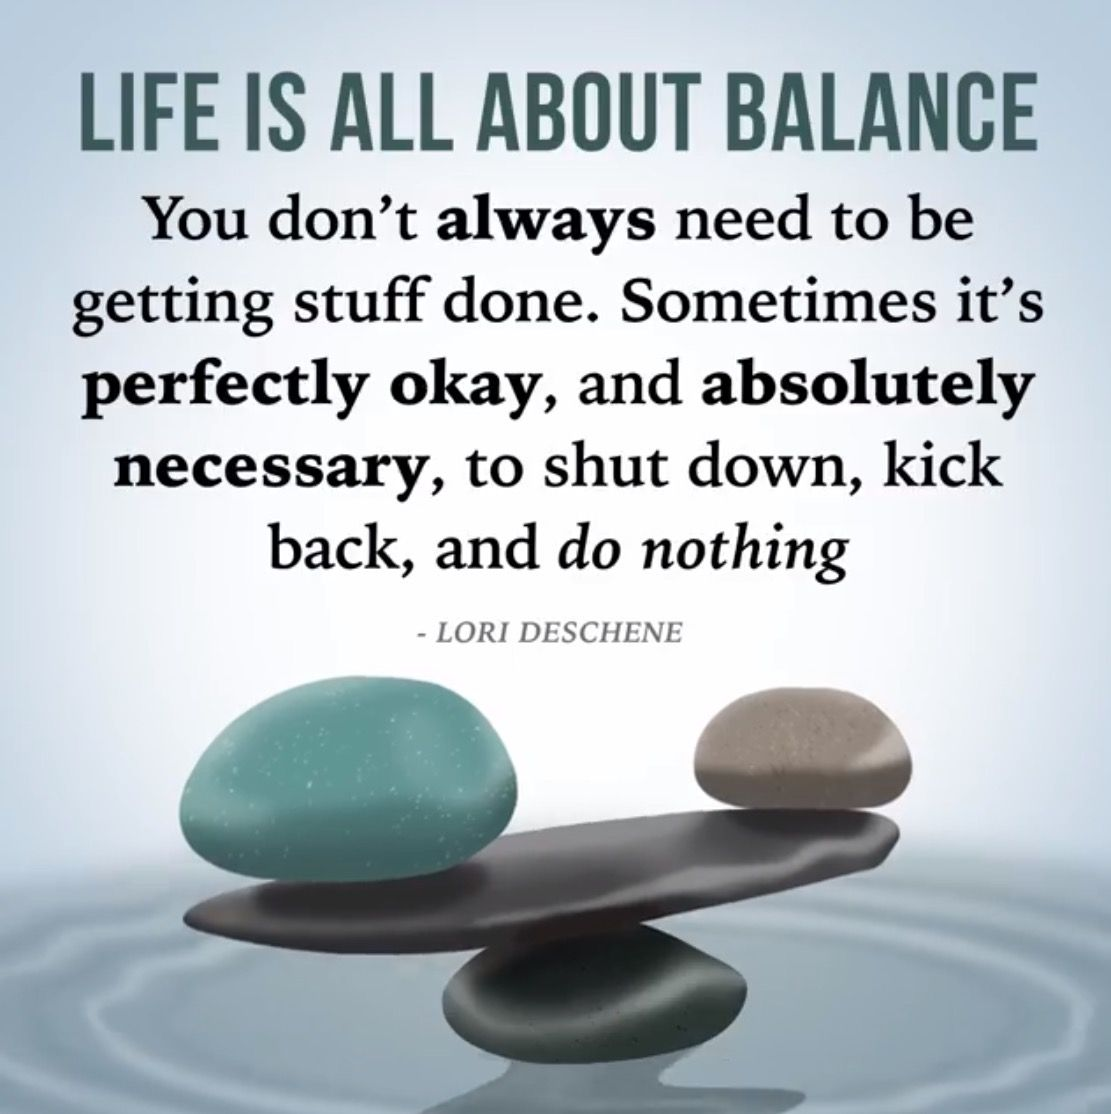 Balanced Life Quotes Pinday On Quotes For Everyday  Pinterest